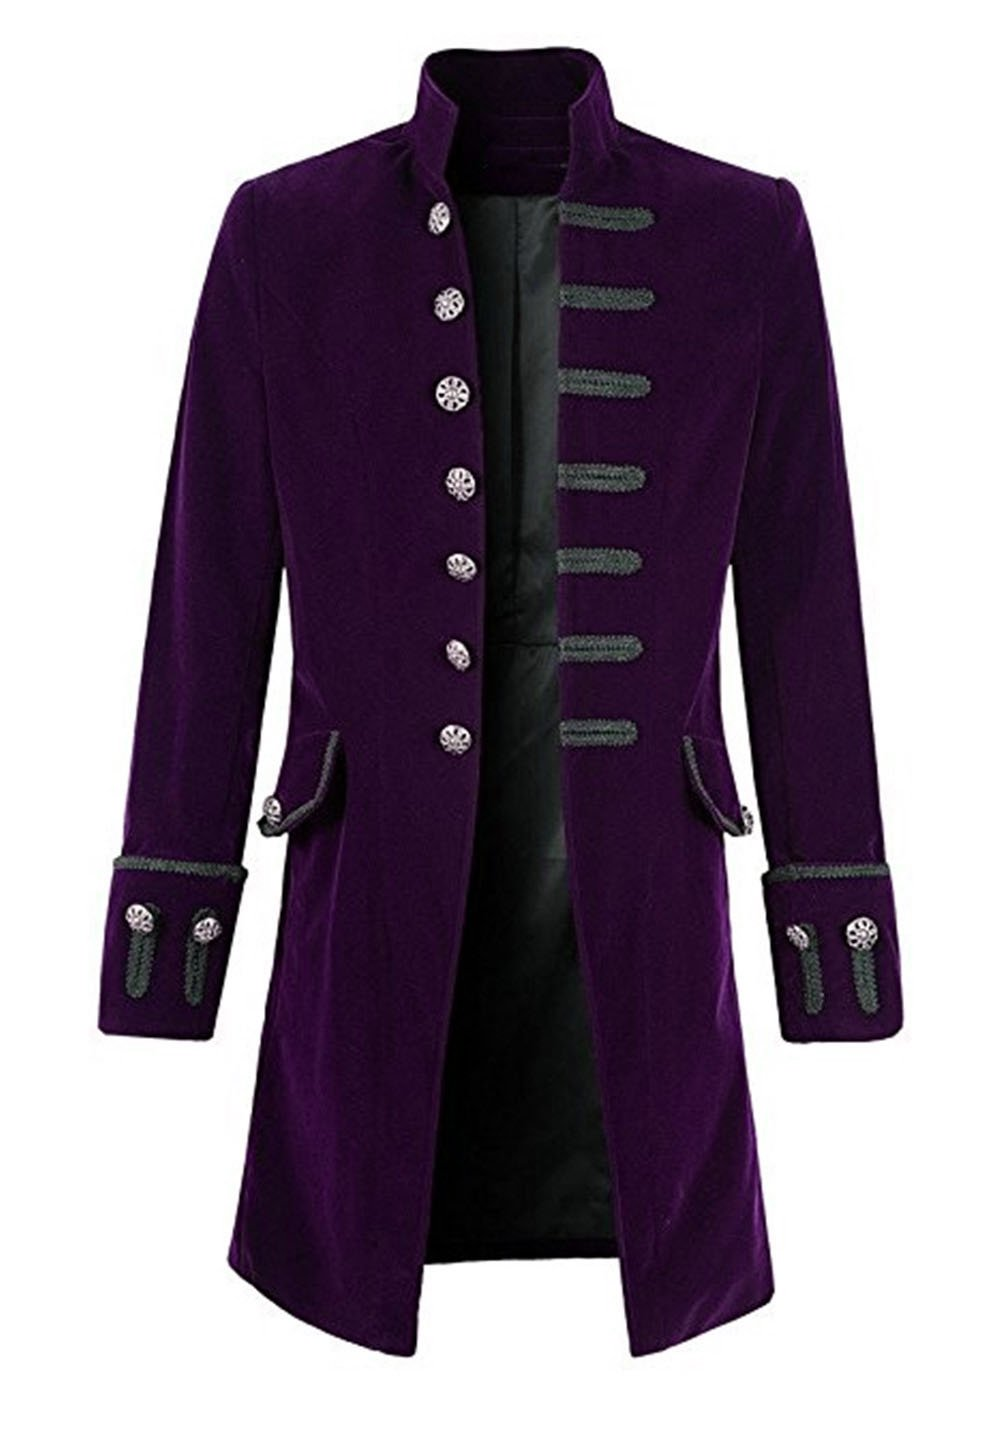 Everbeauty Men's Retro Stylish Velvet Goth Steampunk Long Overcoat